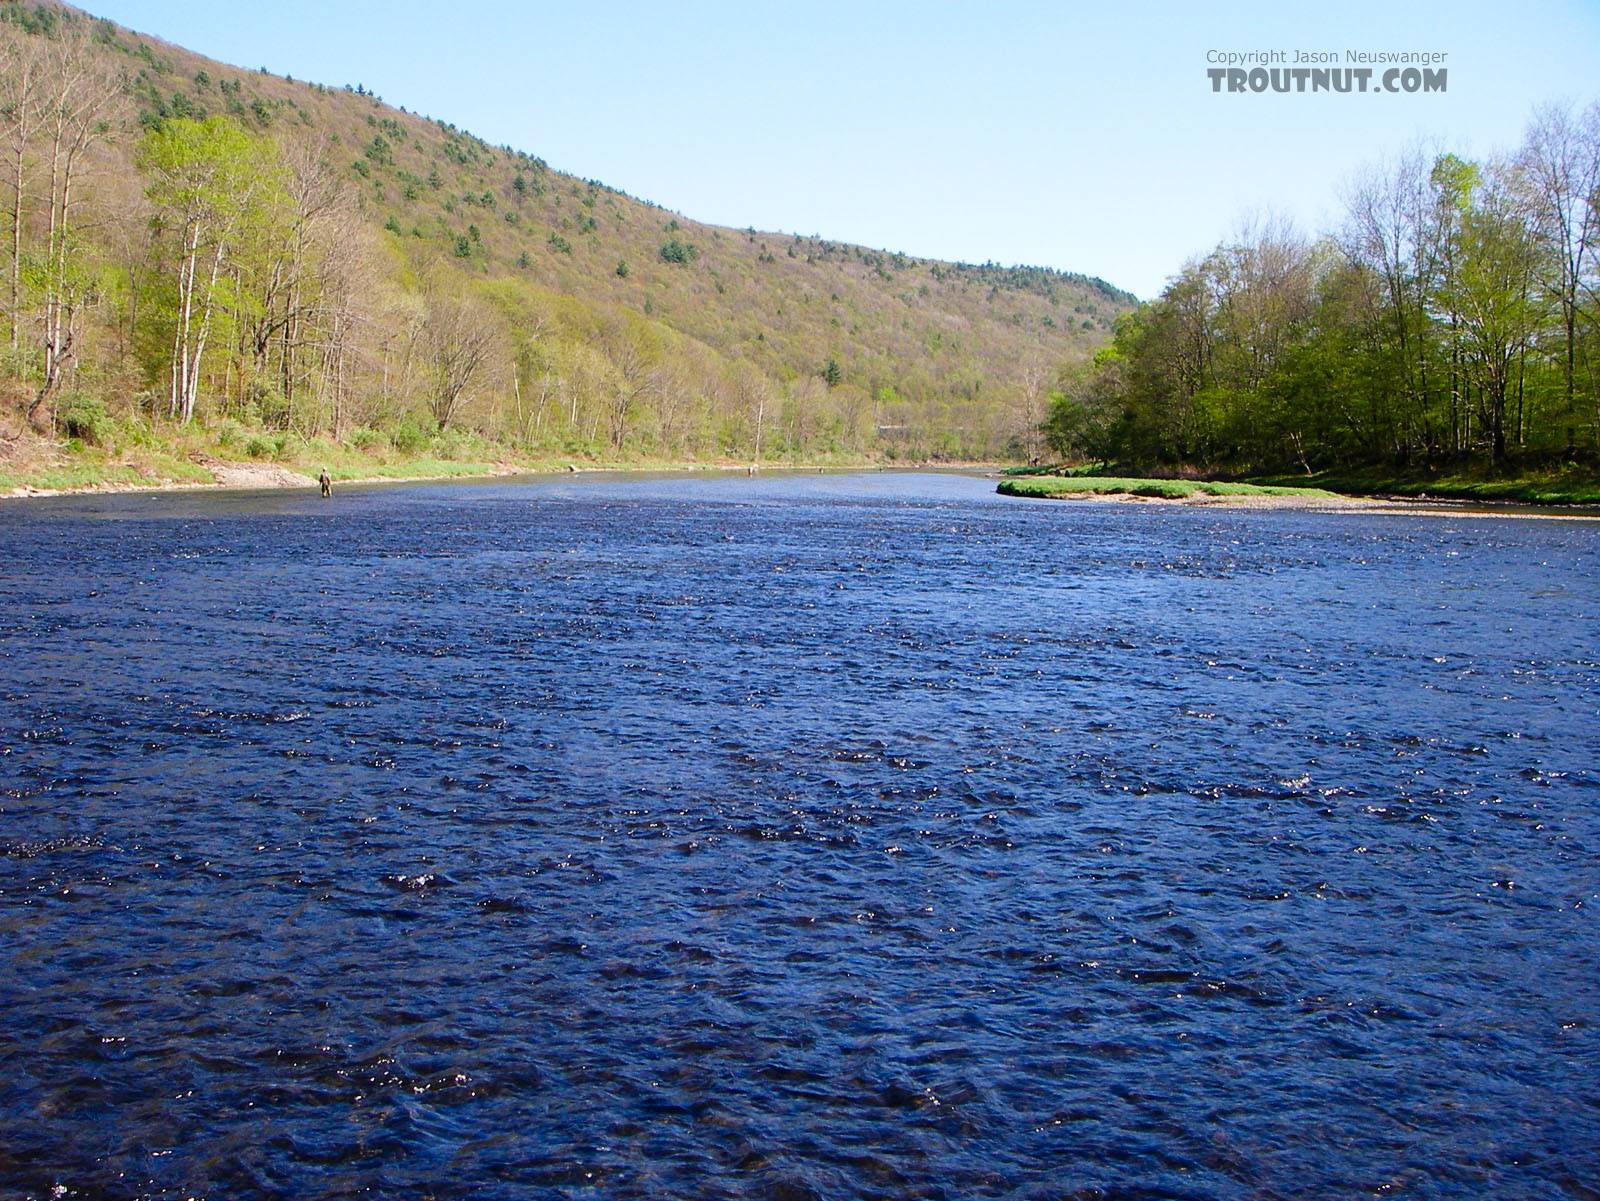 From the West Branch of the Delaware River in New York.